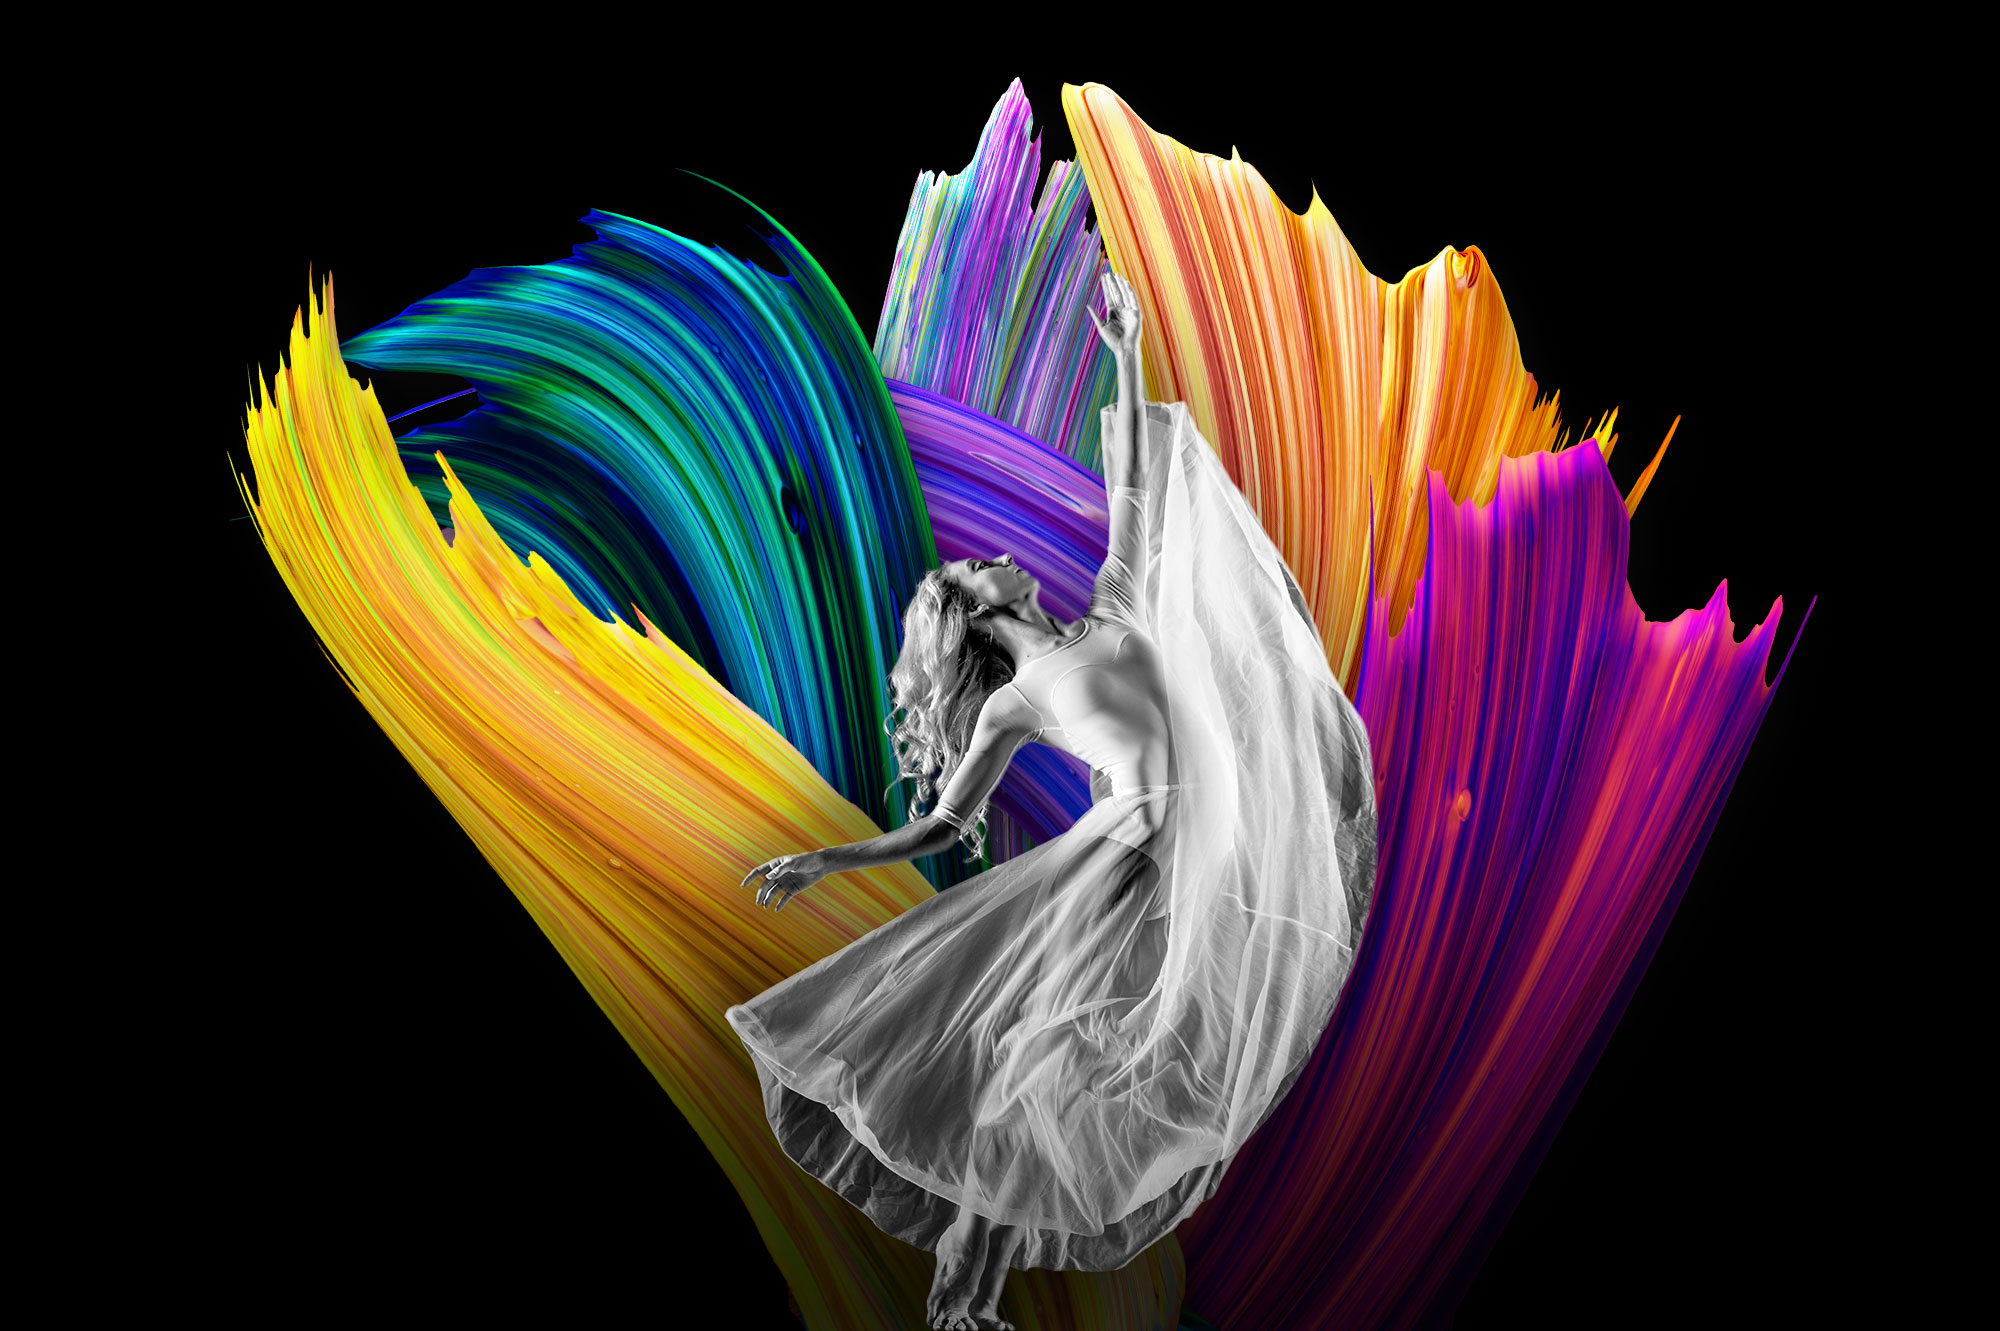 11-Vibrant-Paint-Strokes_preview_examples-04.jpg